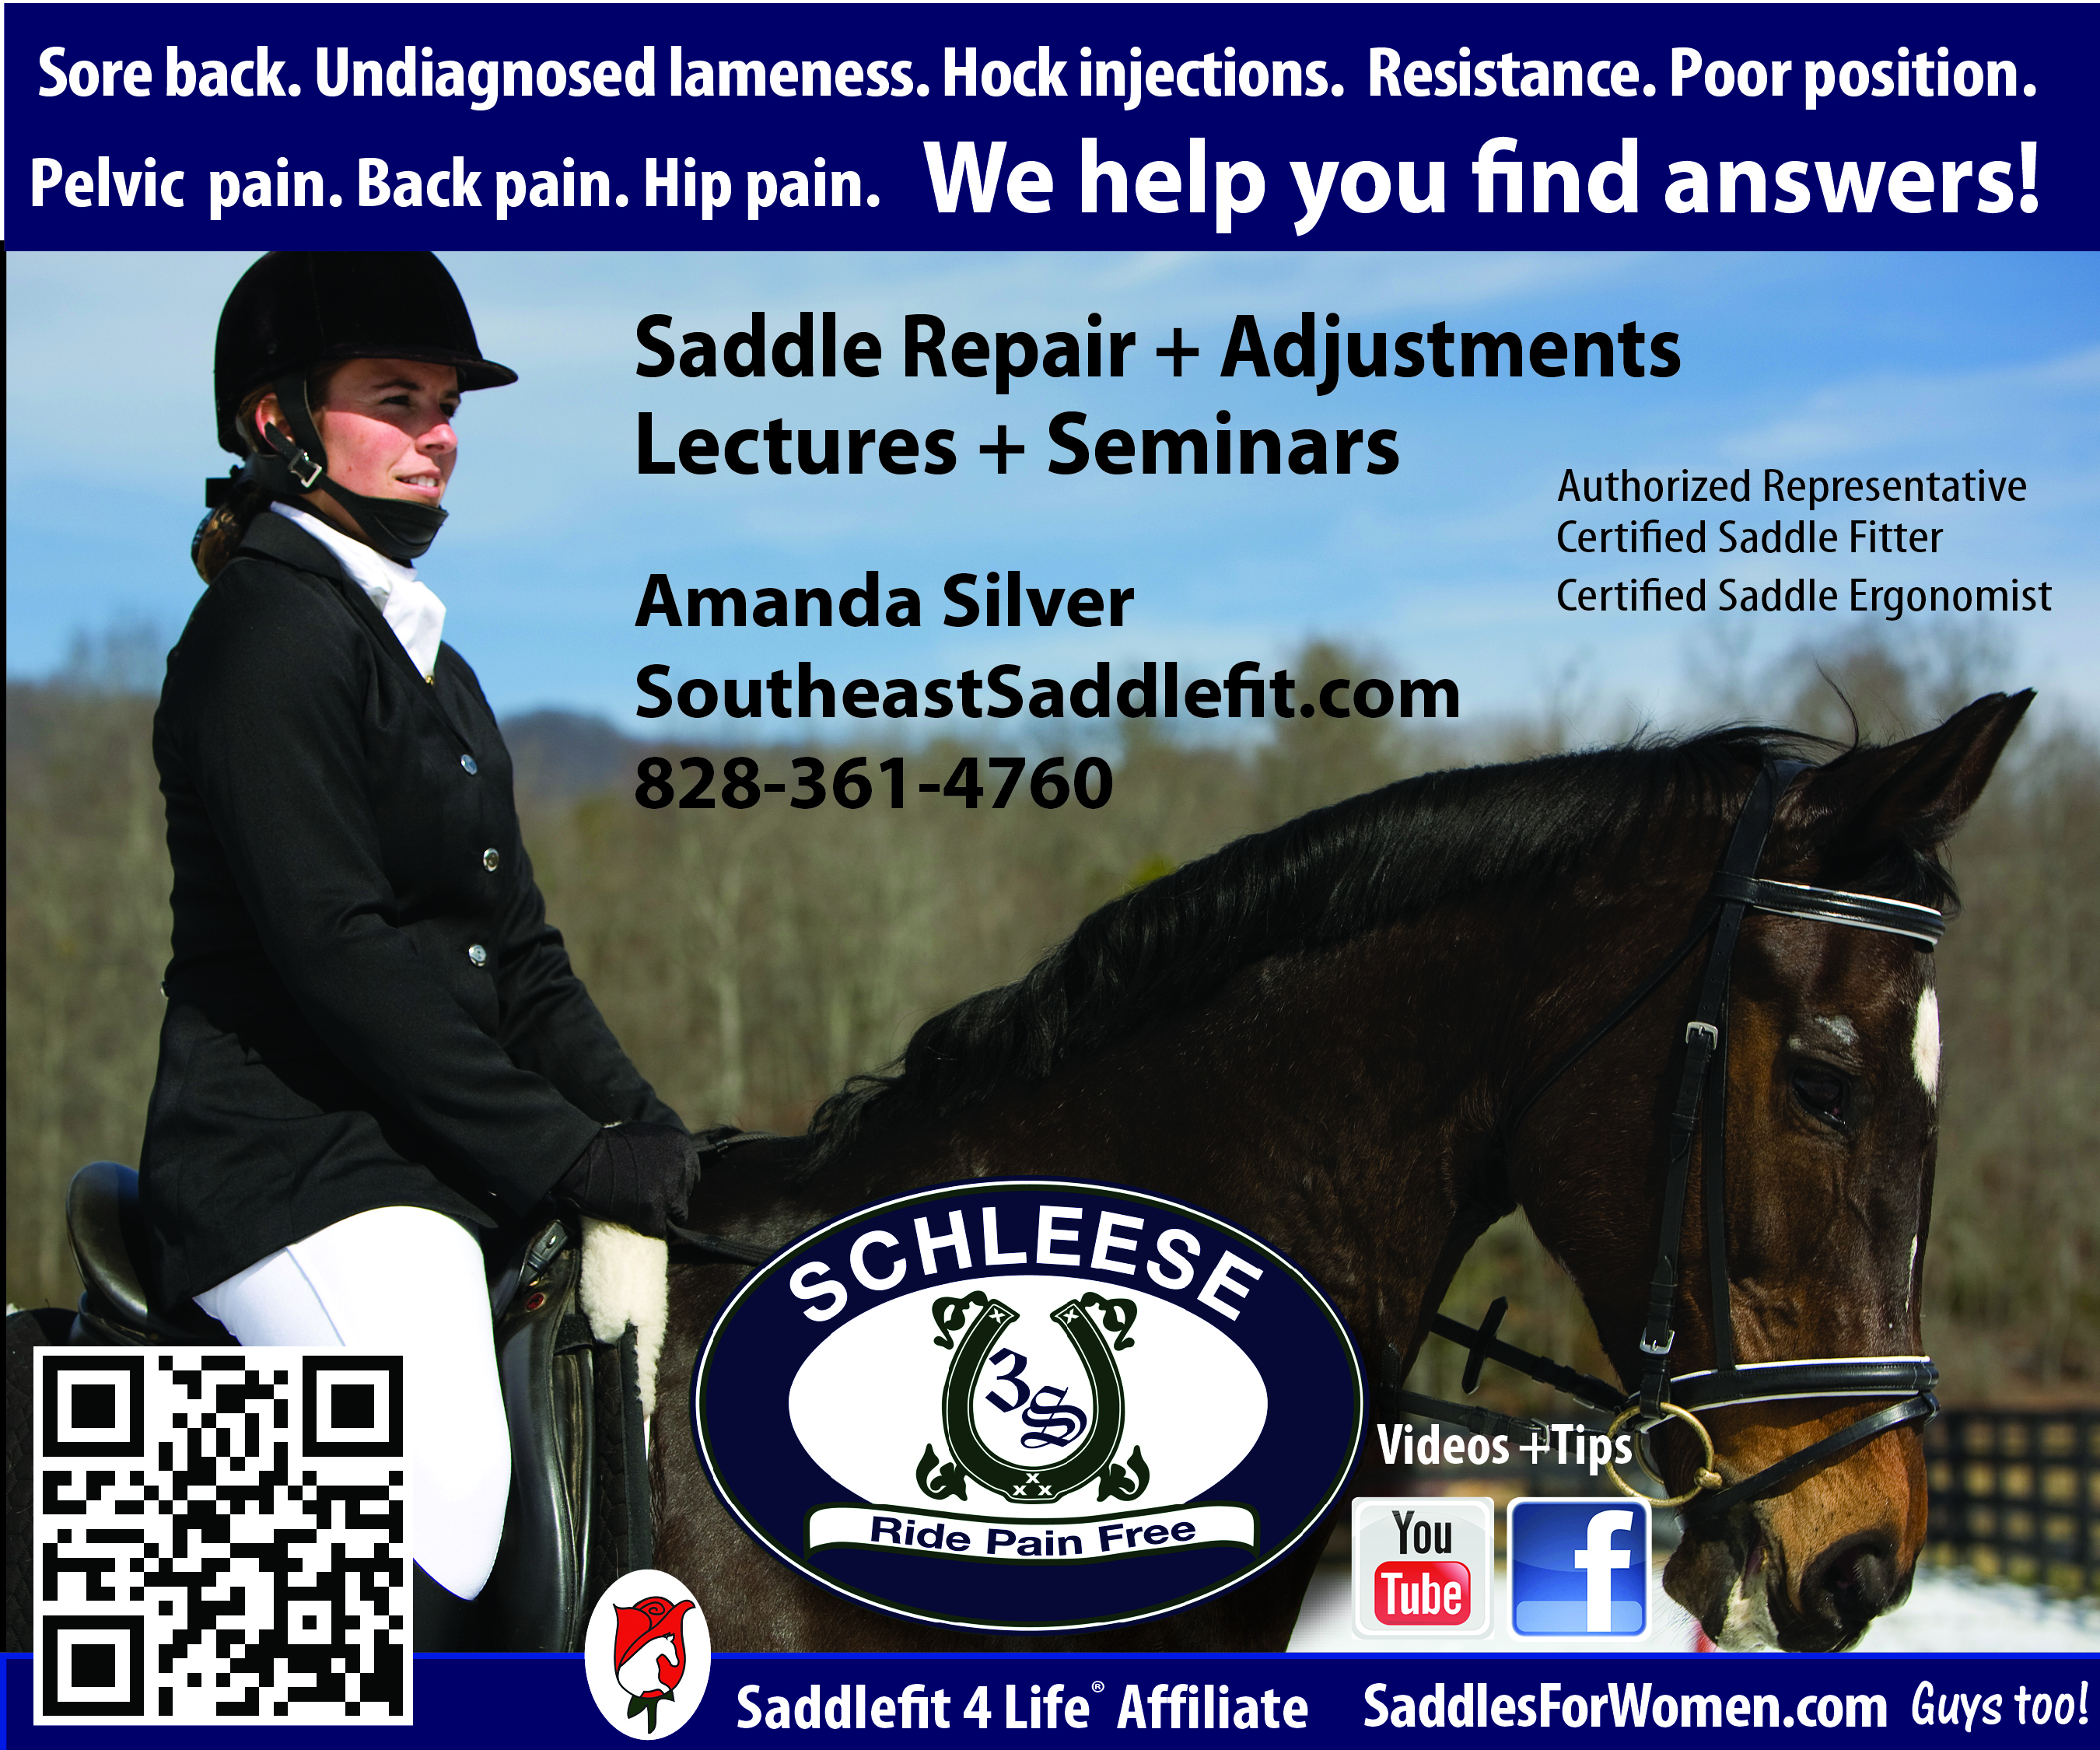 Southeast Saddle Fit/ Amanda Silver